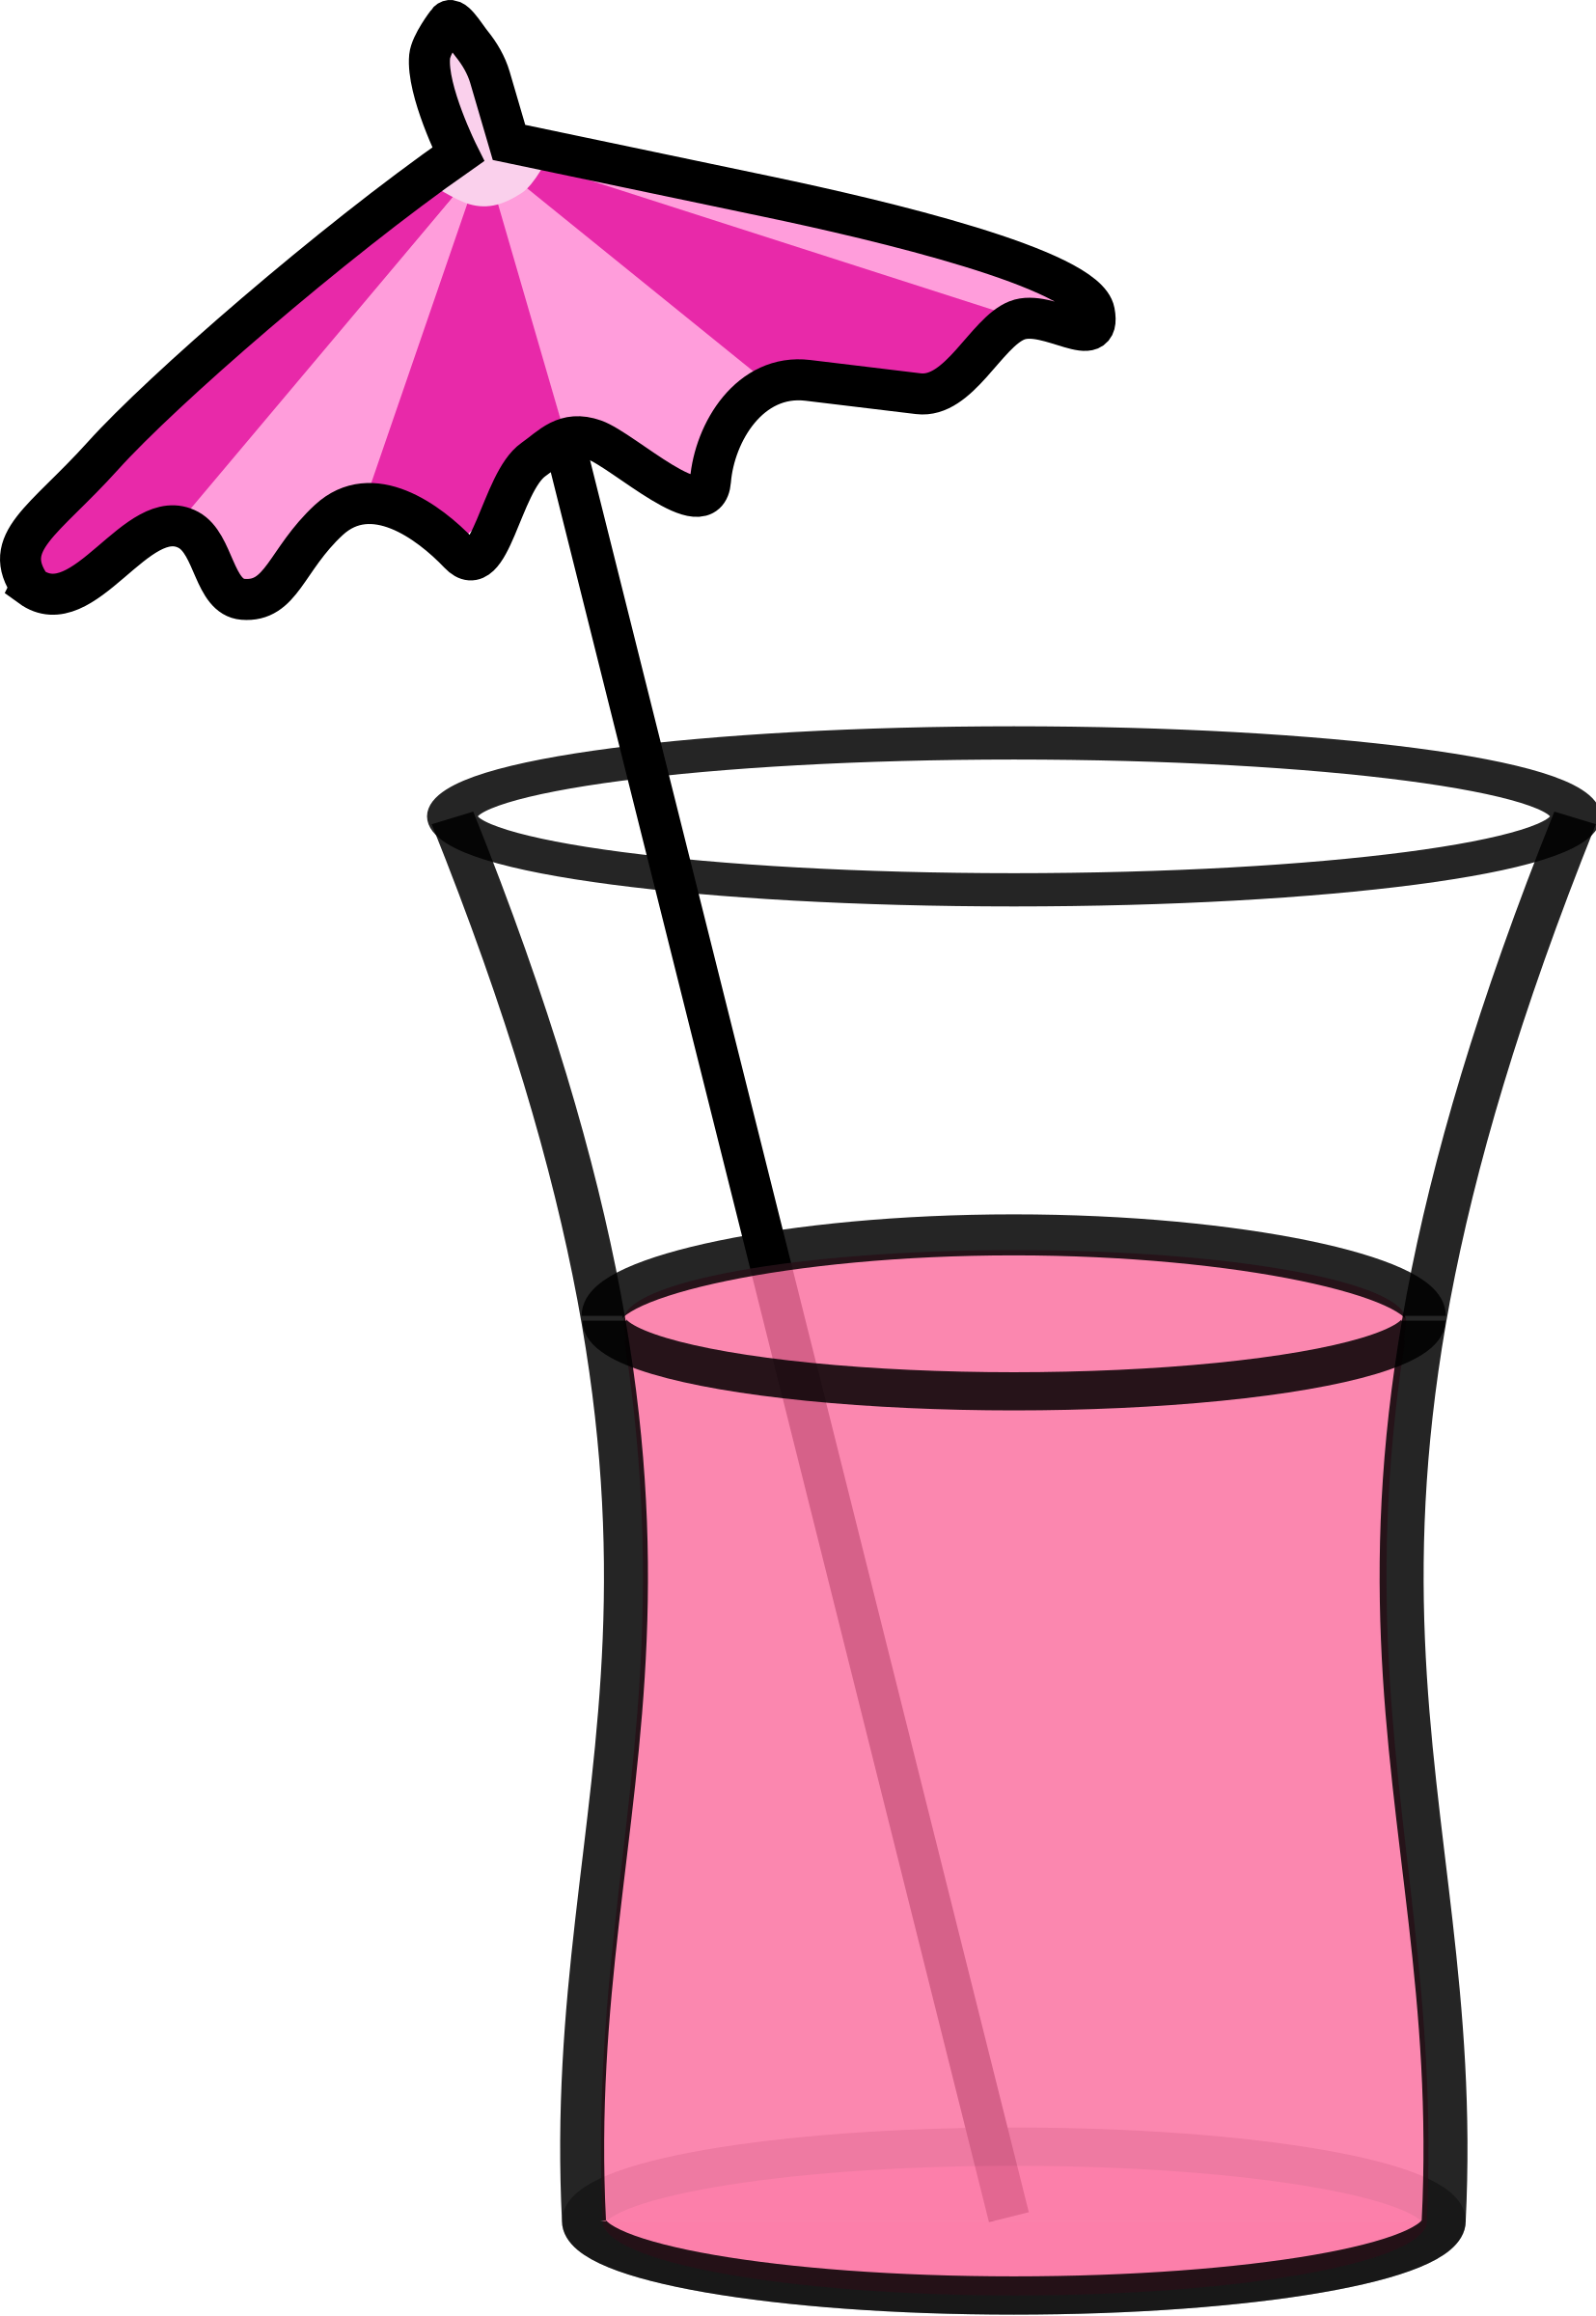 Drawing free image . Clipart umbrella drink